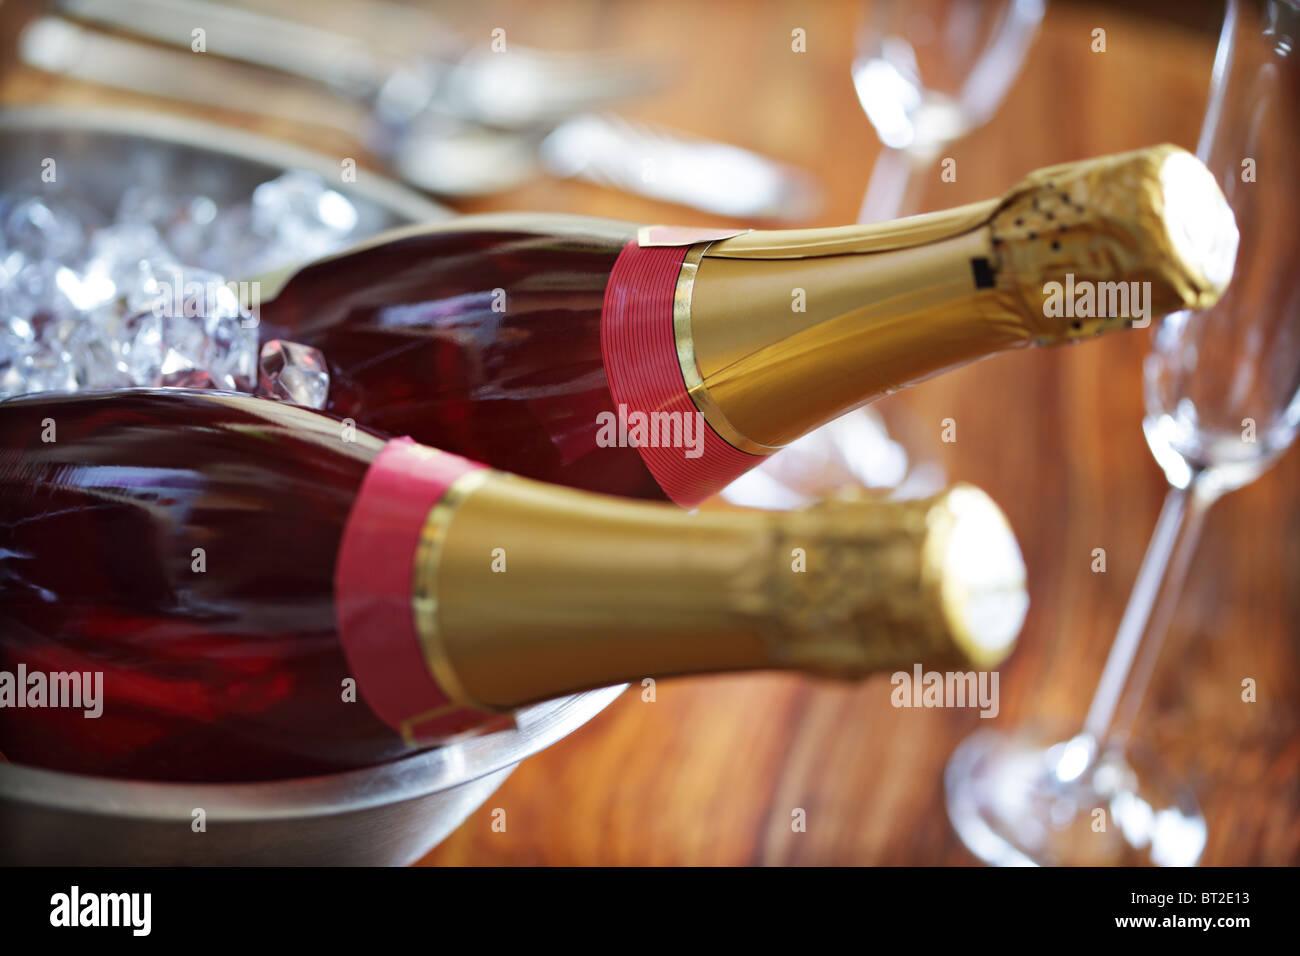 Champagne on ice - Stock Image